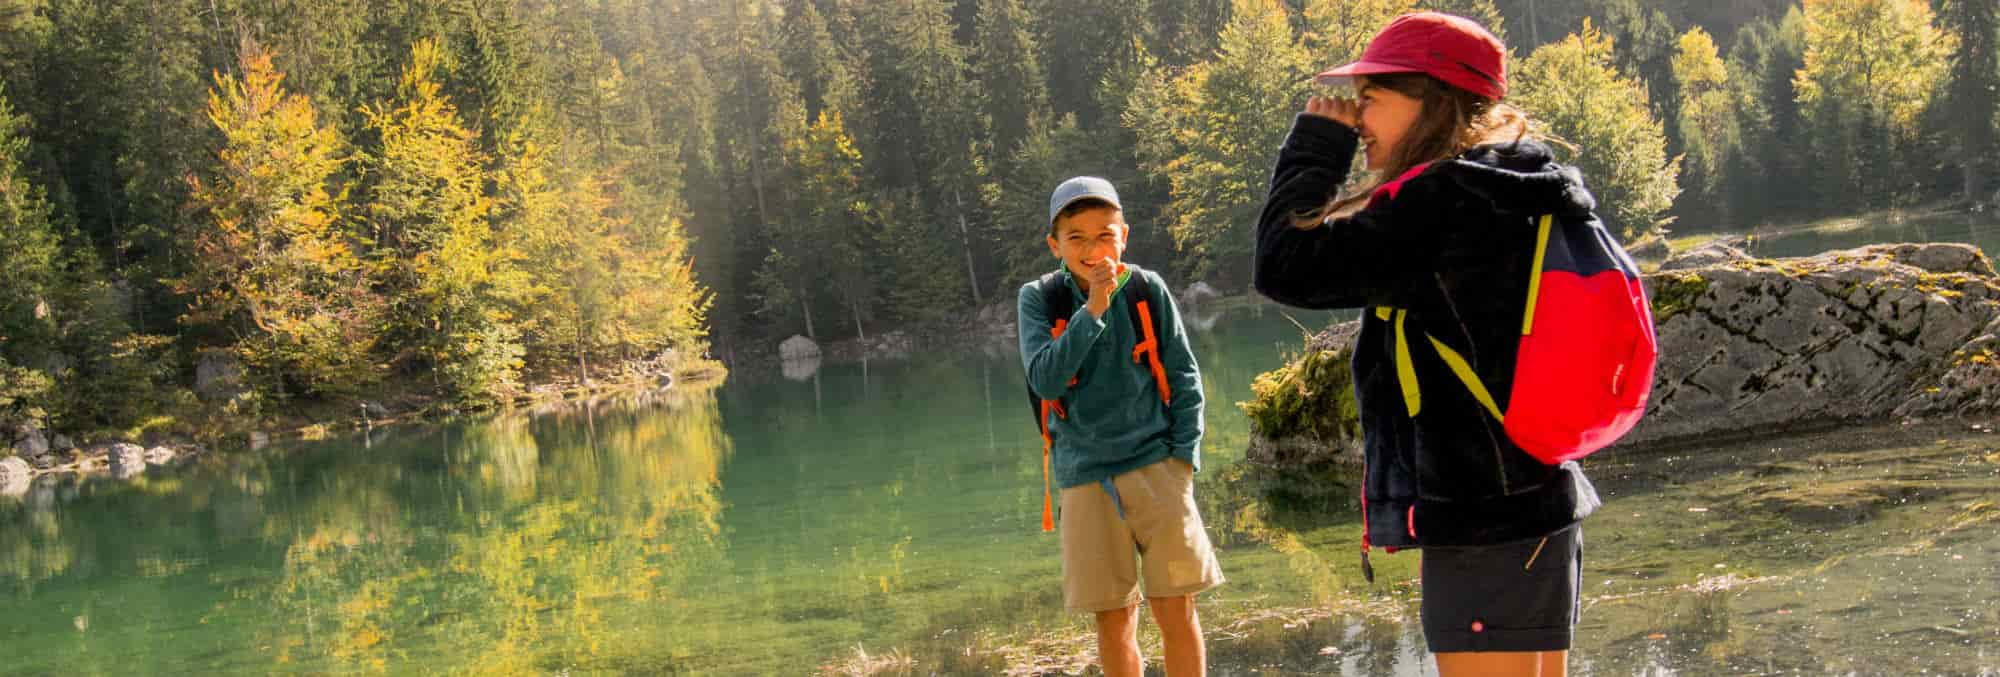 3 Must Follow Tips While Hiking With Your Kids